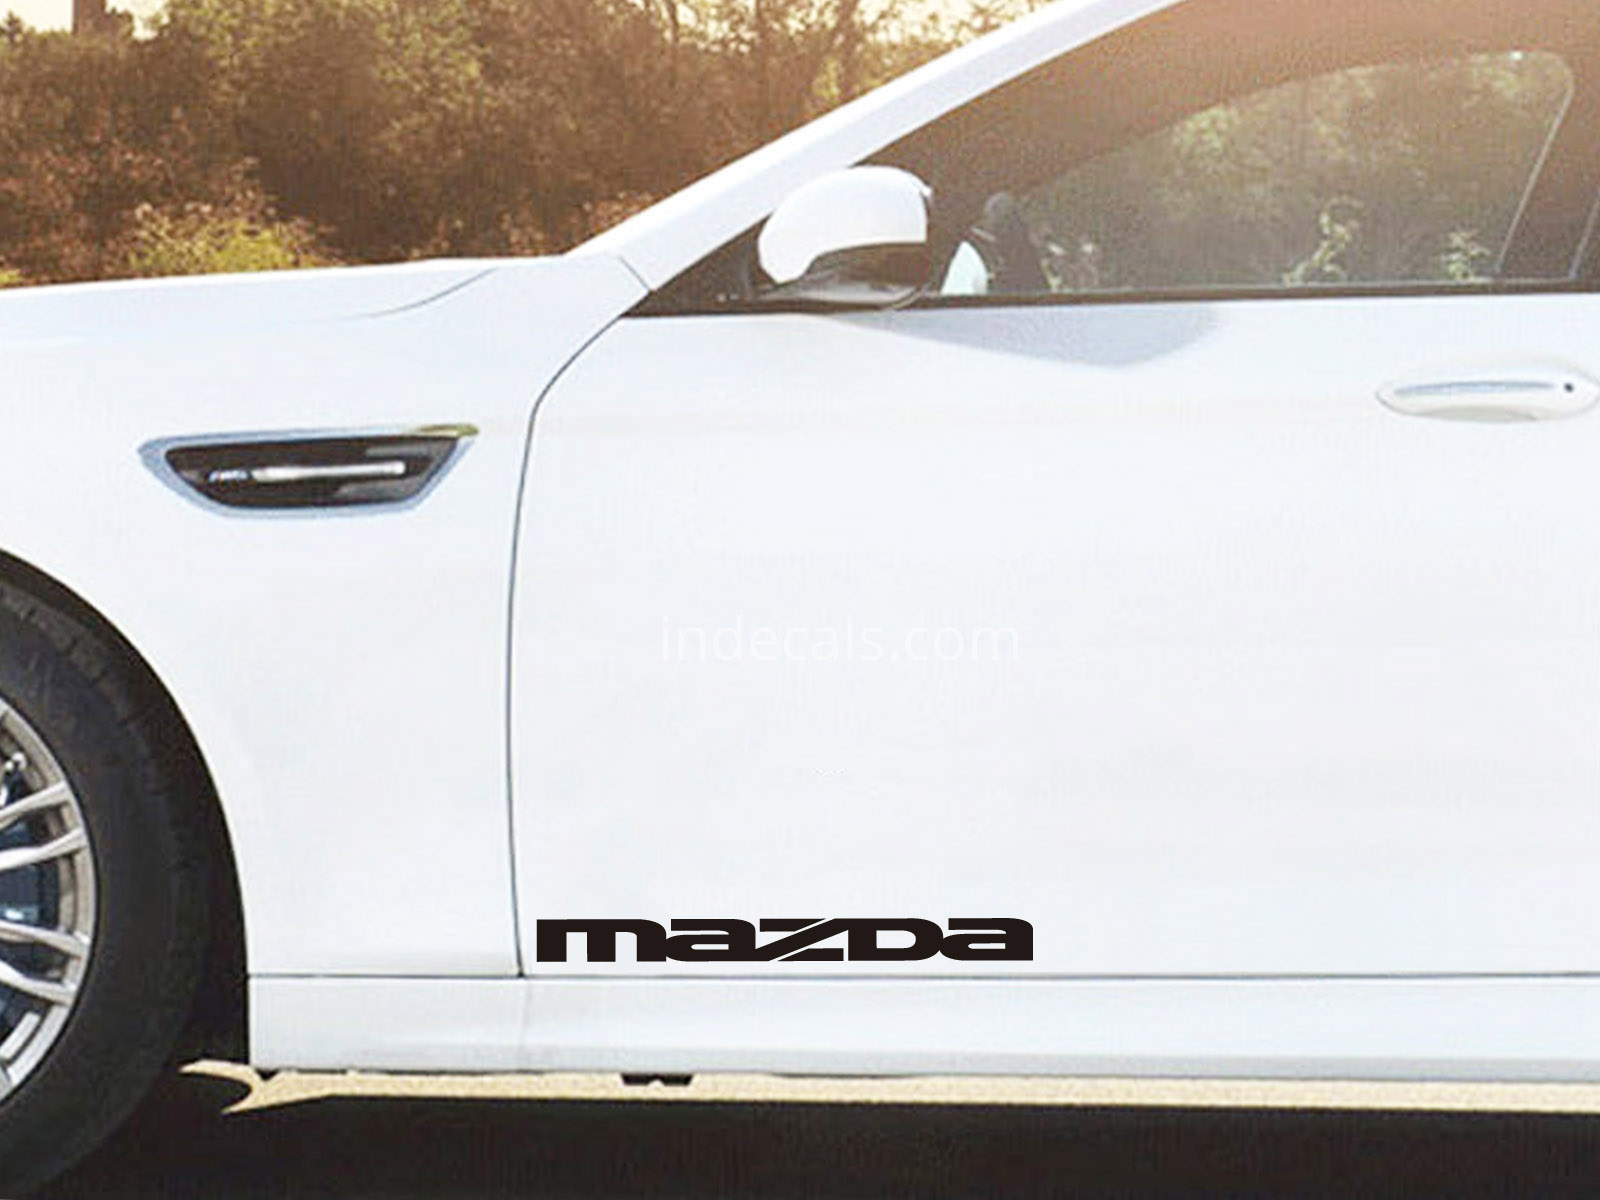 2 x Mazda Stickers for Doors Large - Black